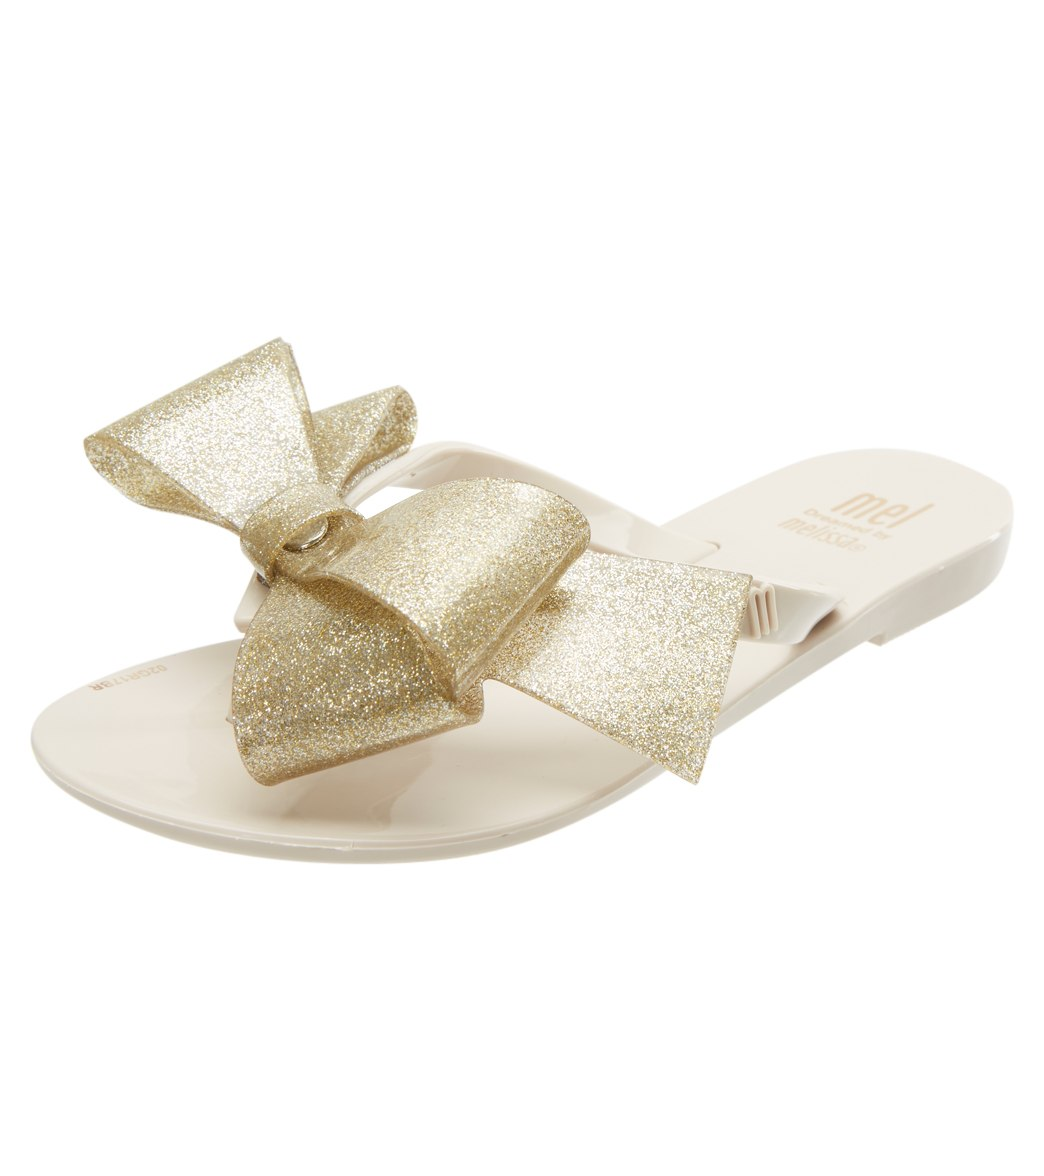 4870054d826849 Mel by Melissa Girls  Harmonic Bow III Flip Flop Sandal (Little Kid) at  SwimOutlet.com - Free Shipping